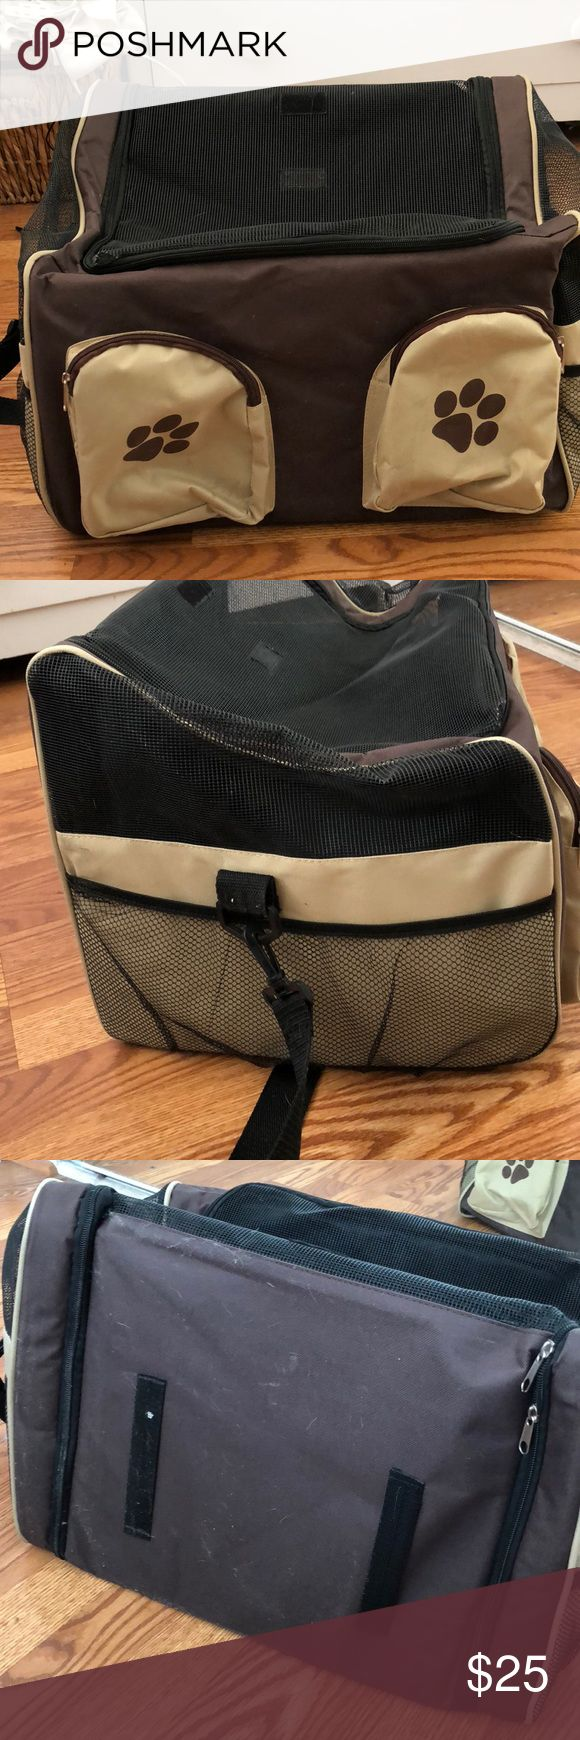 Pet dog car seat carrier I bought this thinking my dogs would be well behaved enough to sit in there while I drive . Like new , just dusty from being in the shed. I got my Pomeranian and chihuahua and both fit  . It's meant to be a car carrier . You put your seatbelt through the two black spots you see in the photo . It has side pockets to store food . Leashes etc it's about 20 inches long 12 inches high and 12 inches wide . You could fit one dog maybe up to 20 lbs (chitzu, poodle type of…